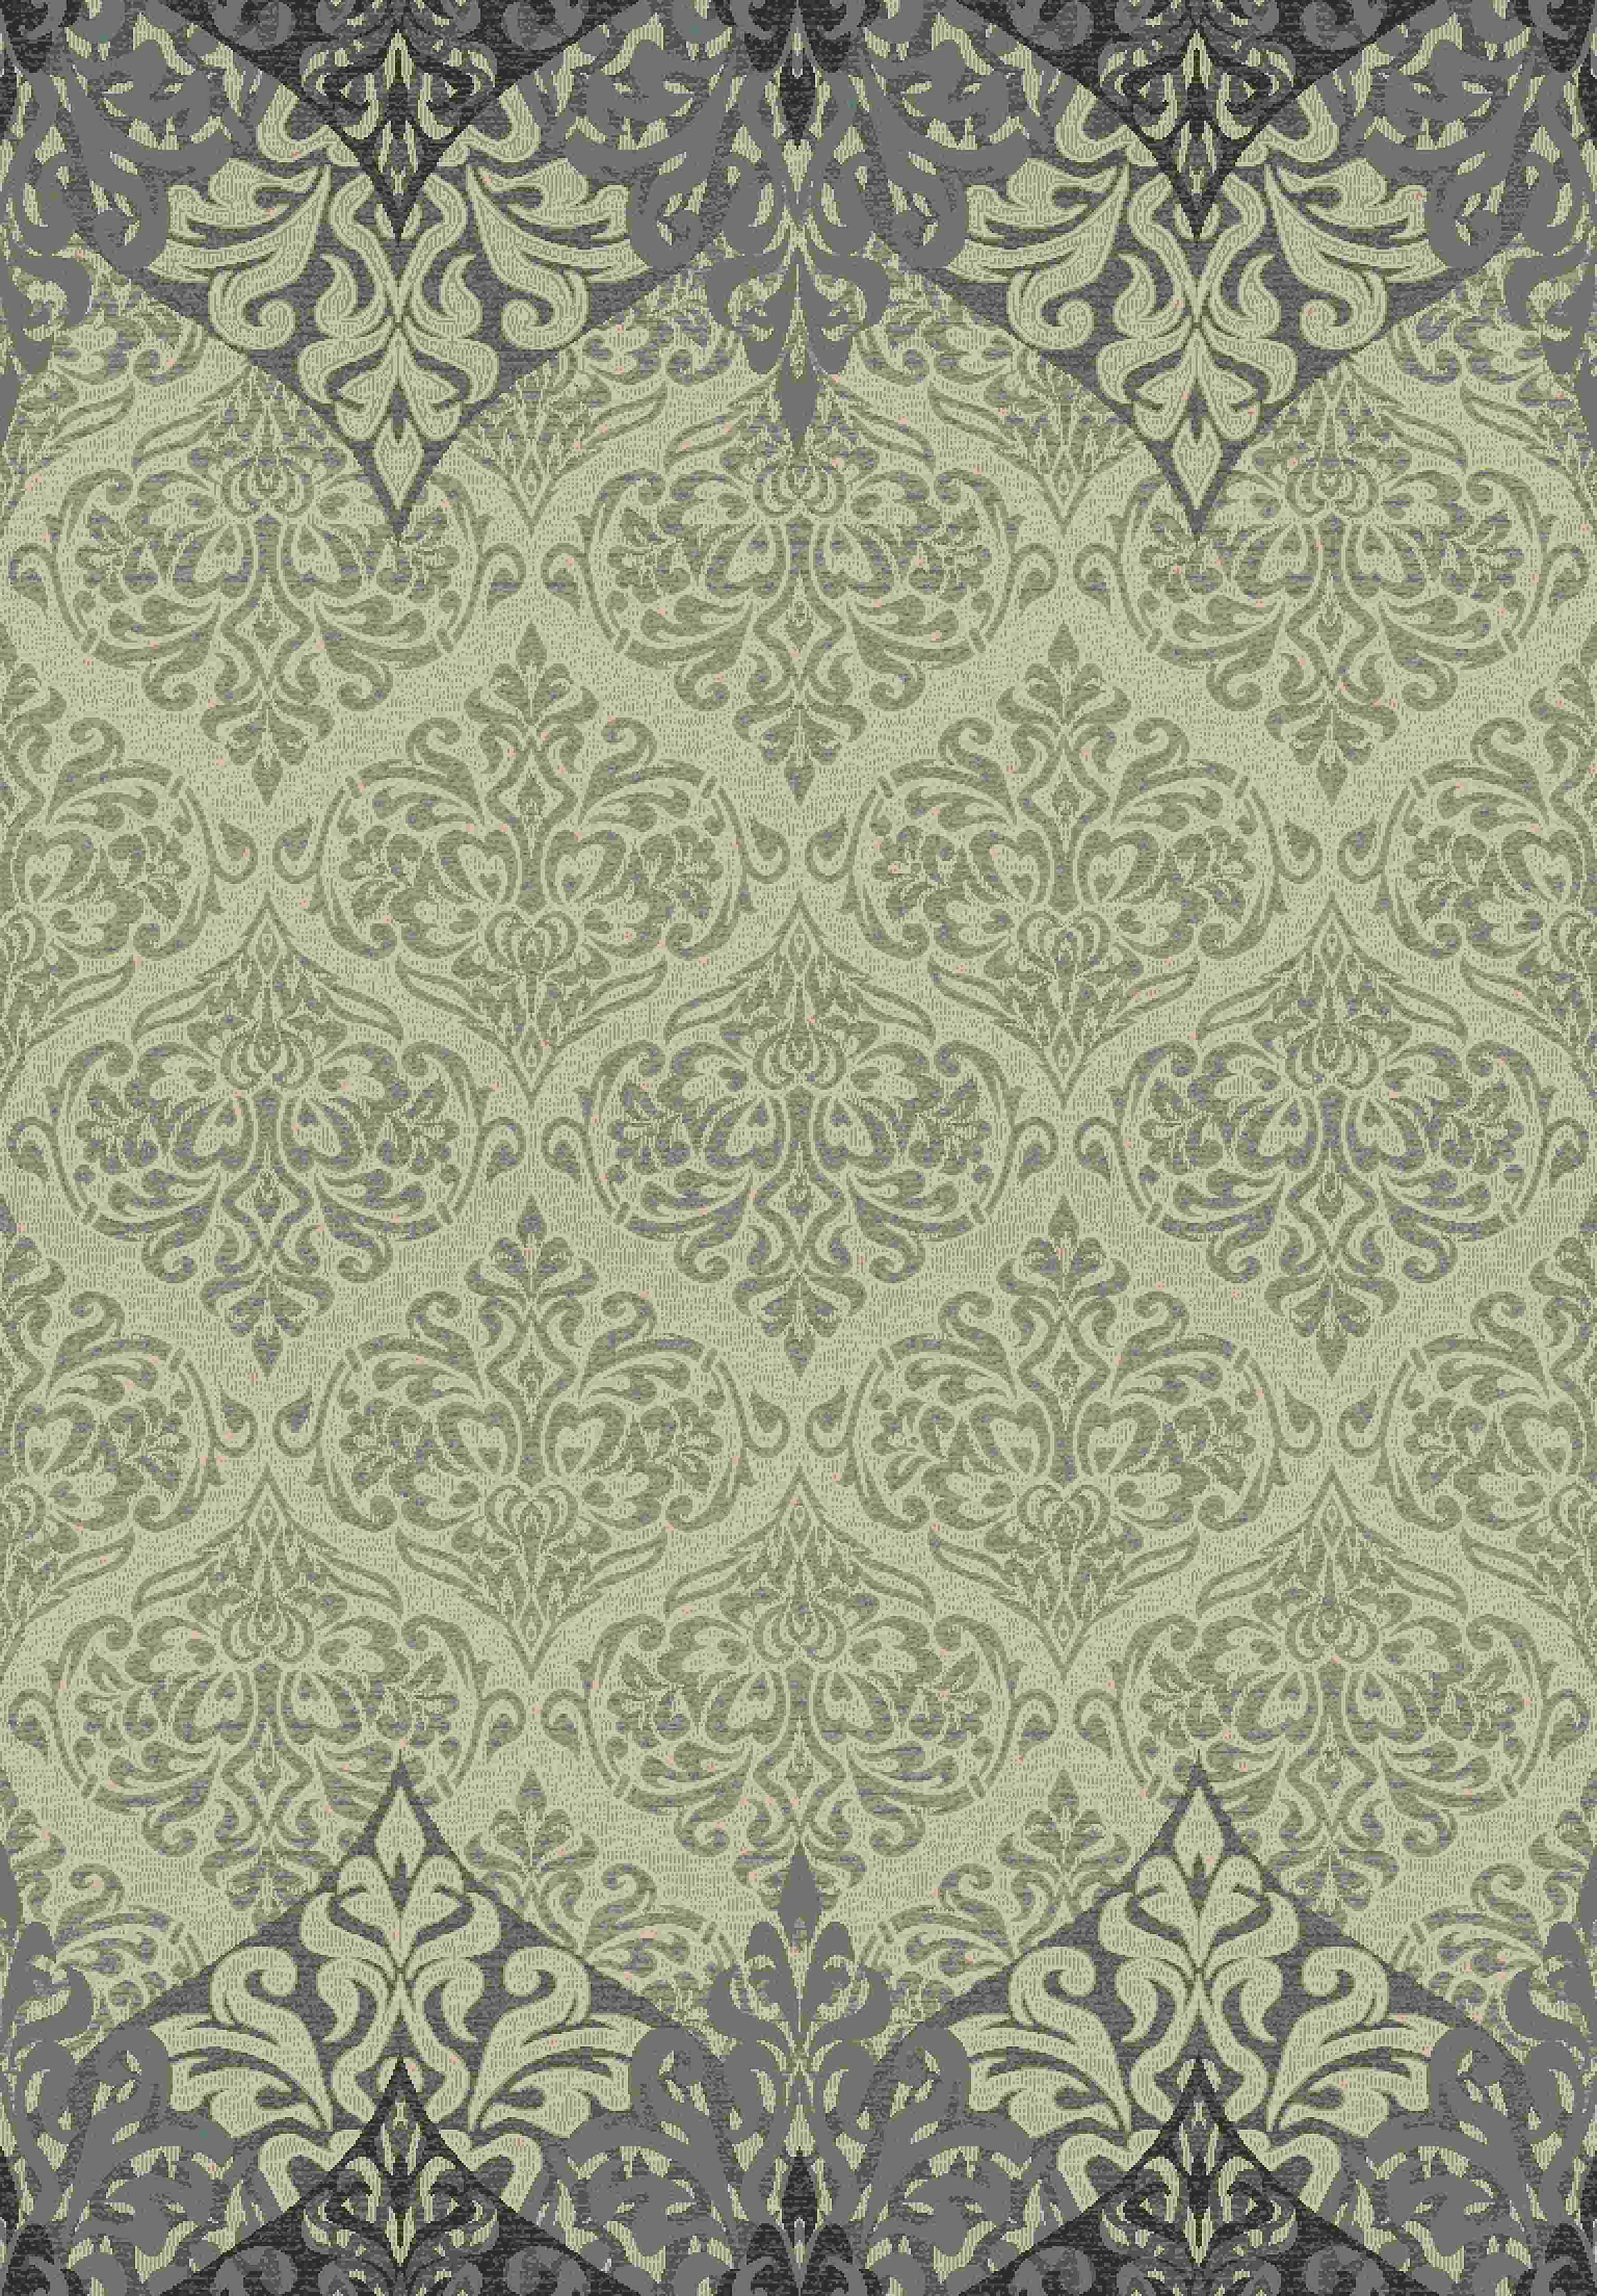 Dynamic Rugs Treasure Ii Medallion/damask Beige 4299 Area Rug